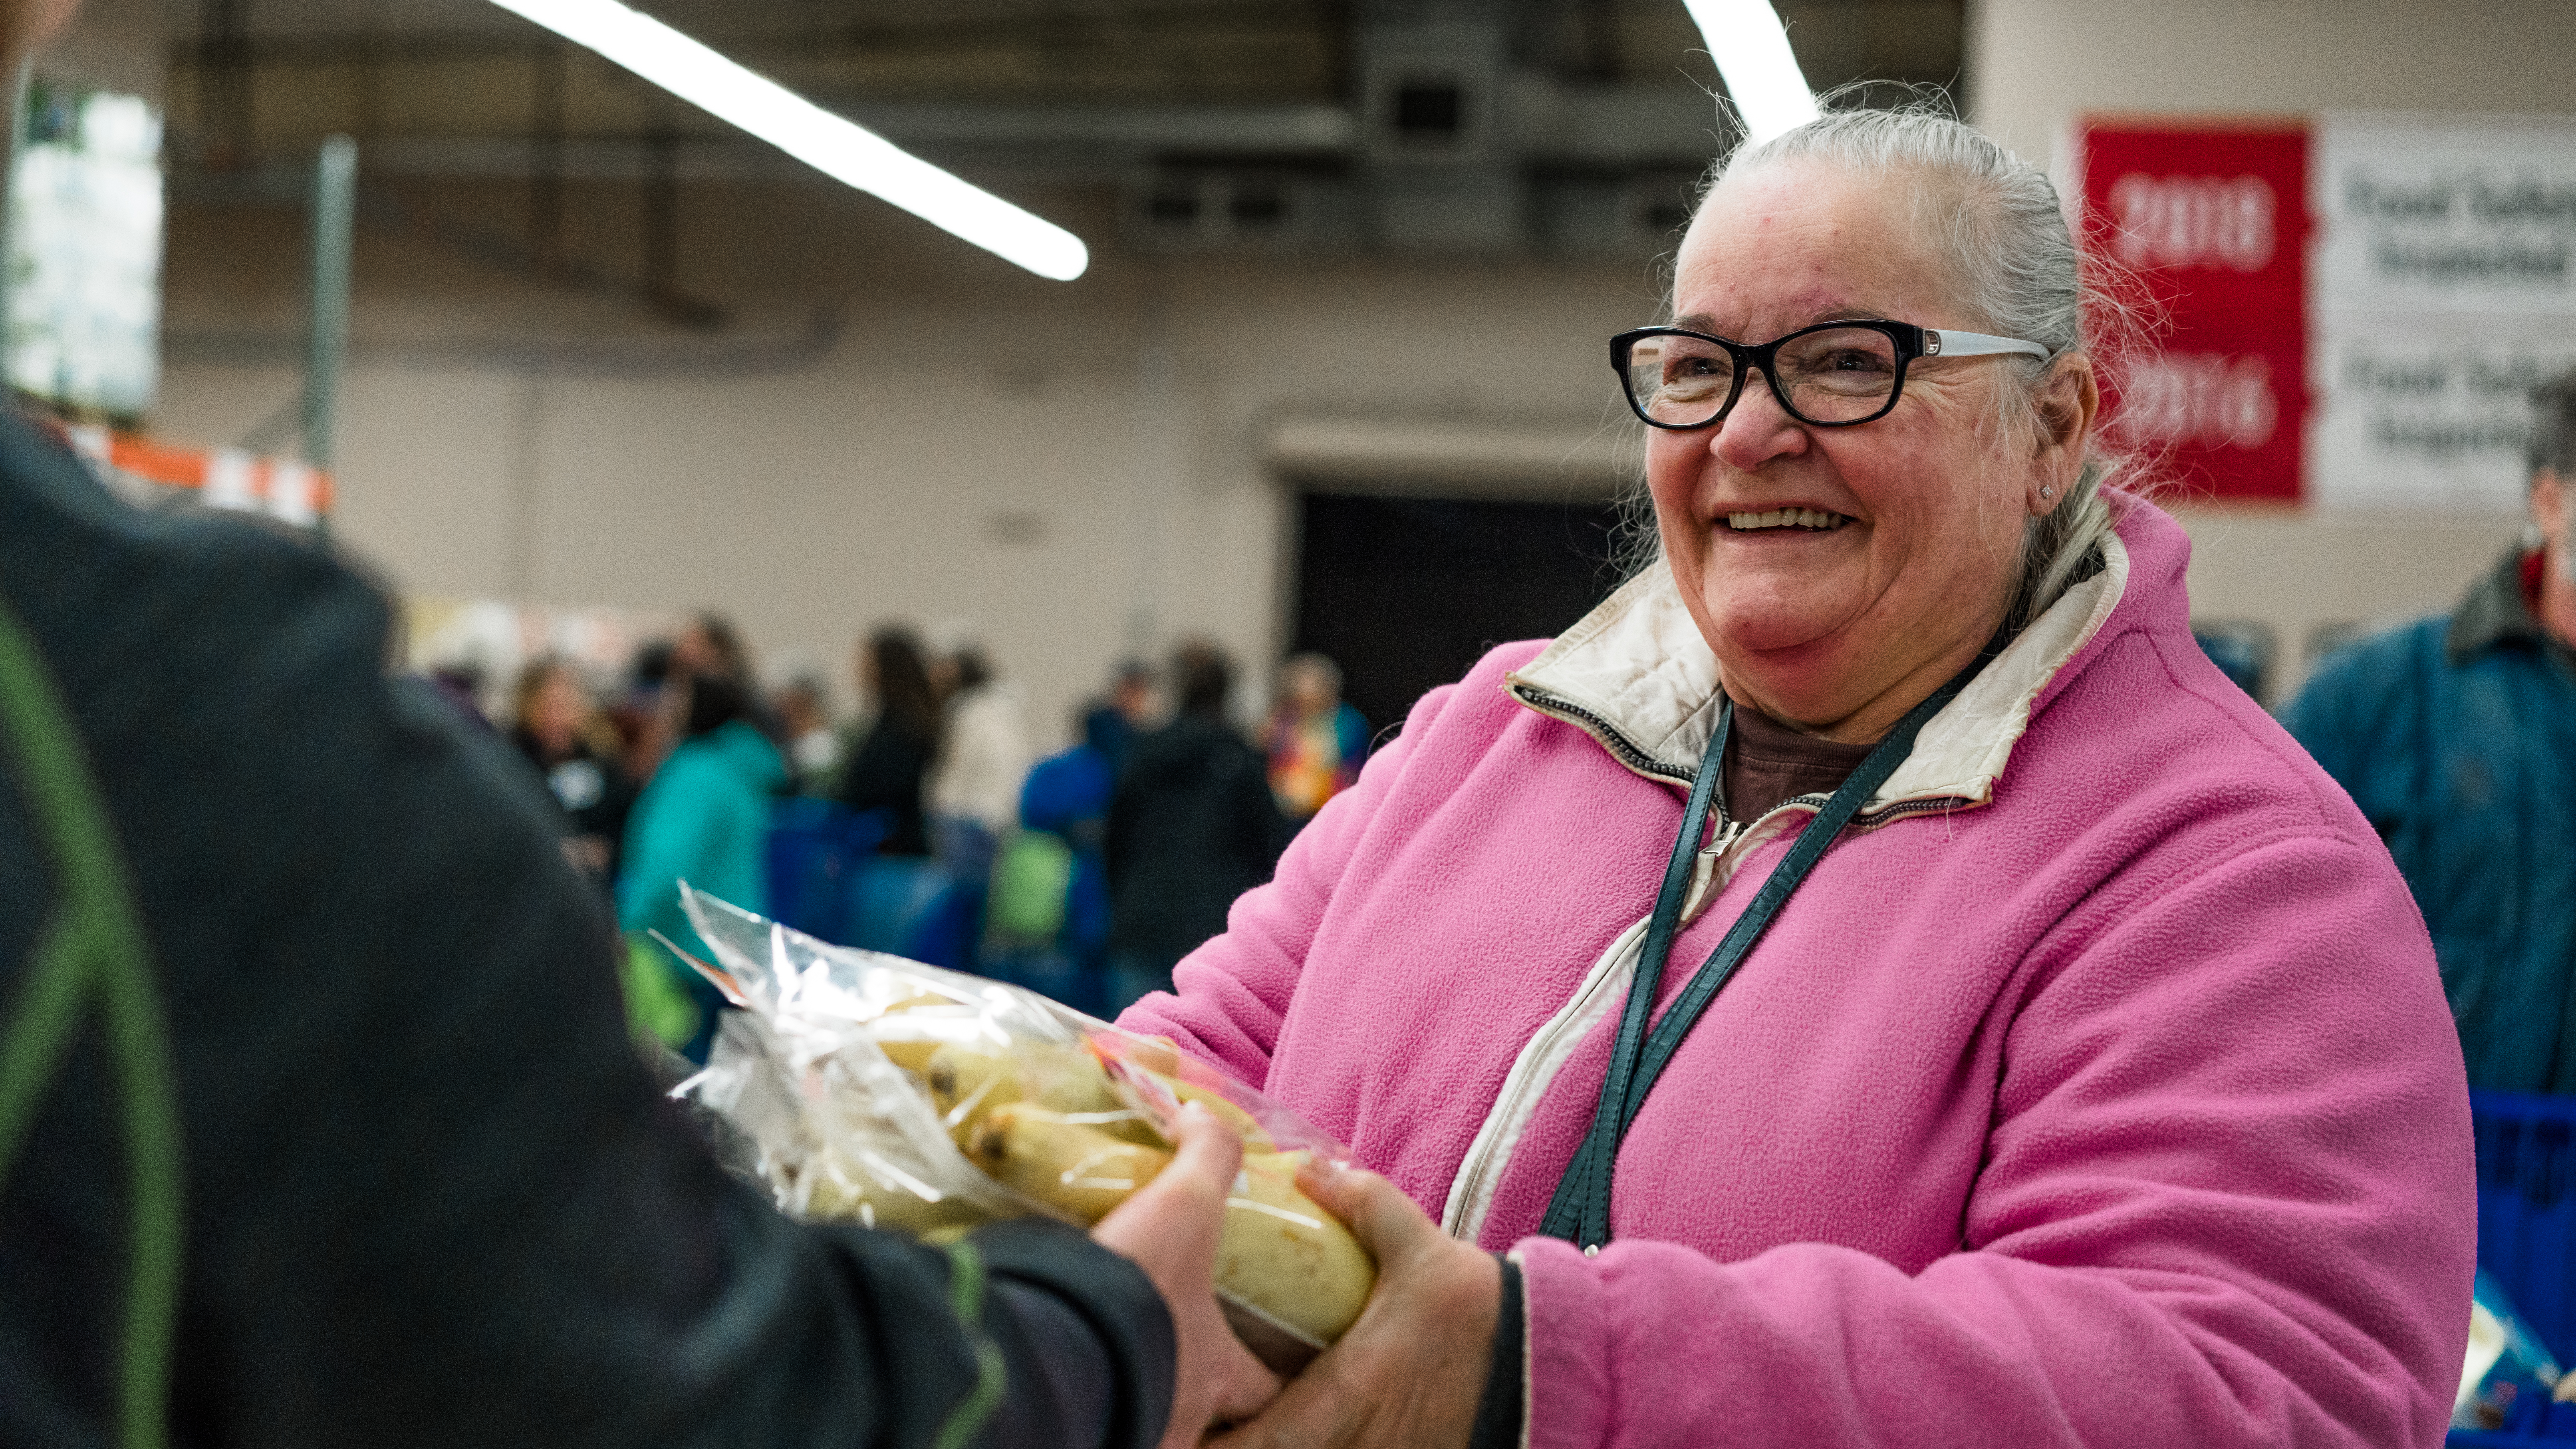 Lady smiling receiving food